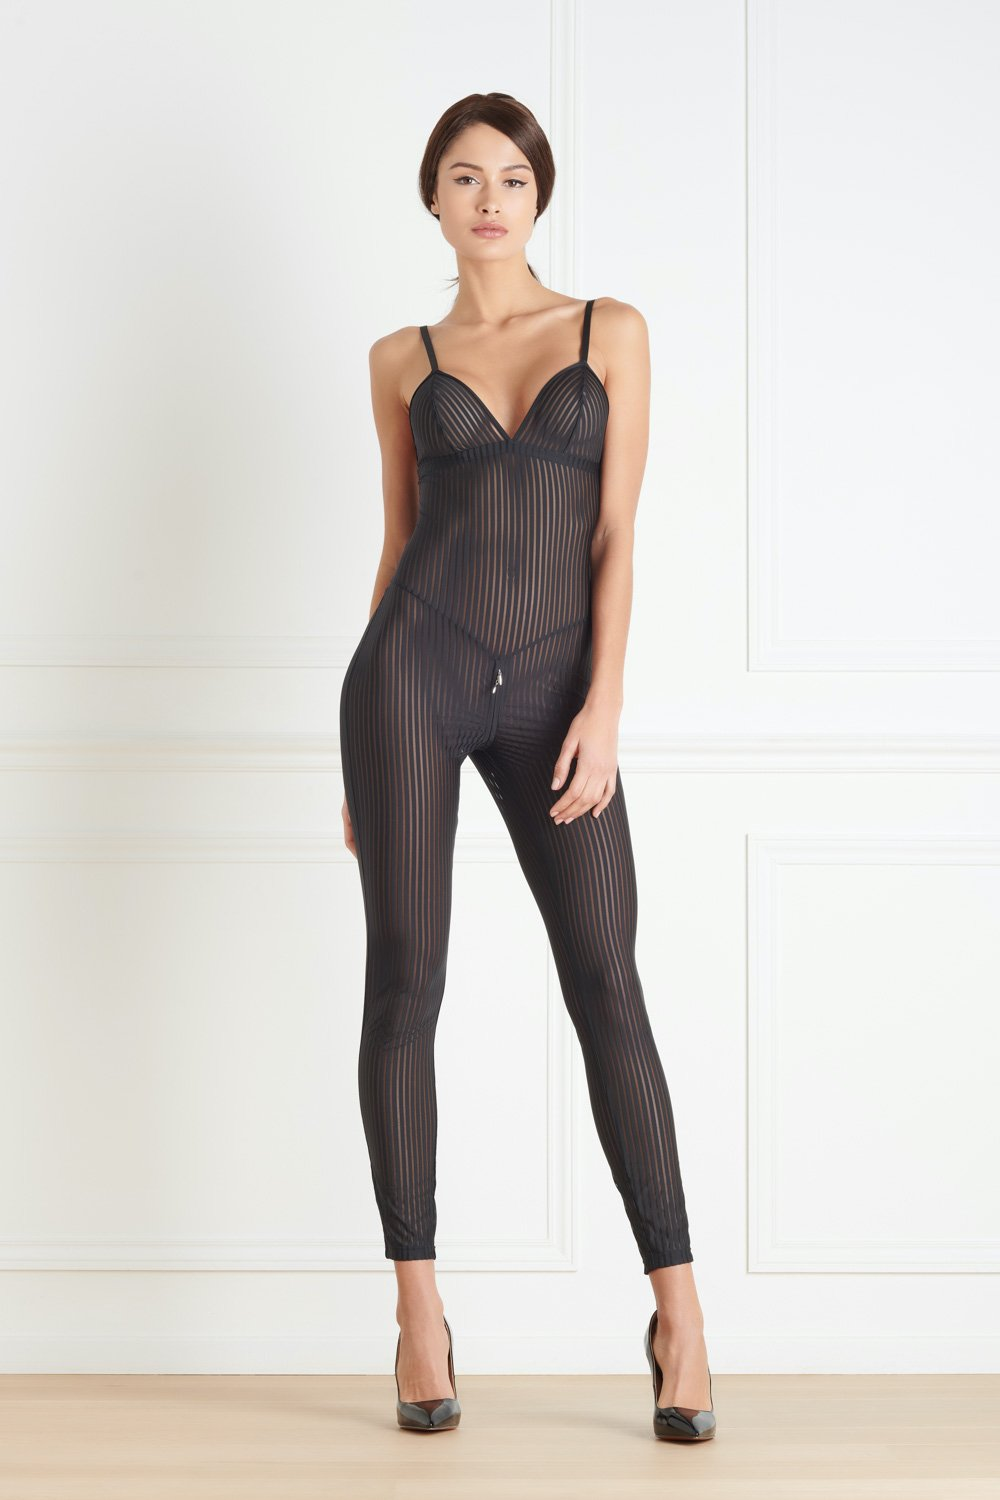 Maison Close Bande à Part Catsuit